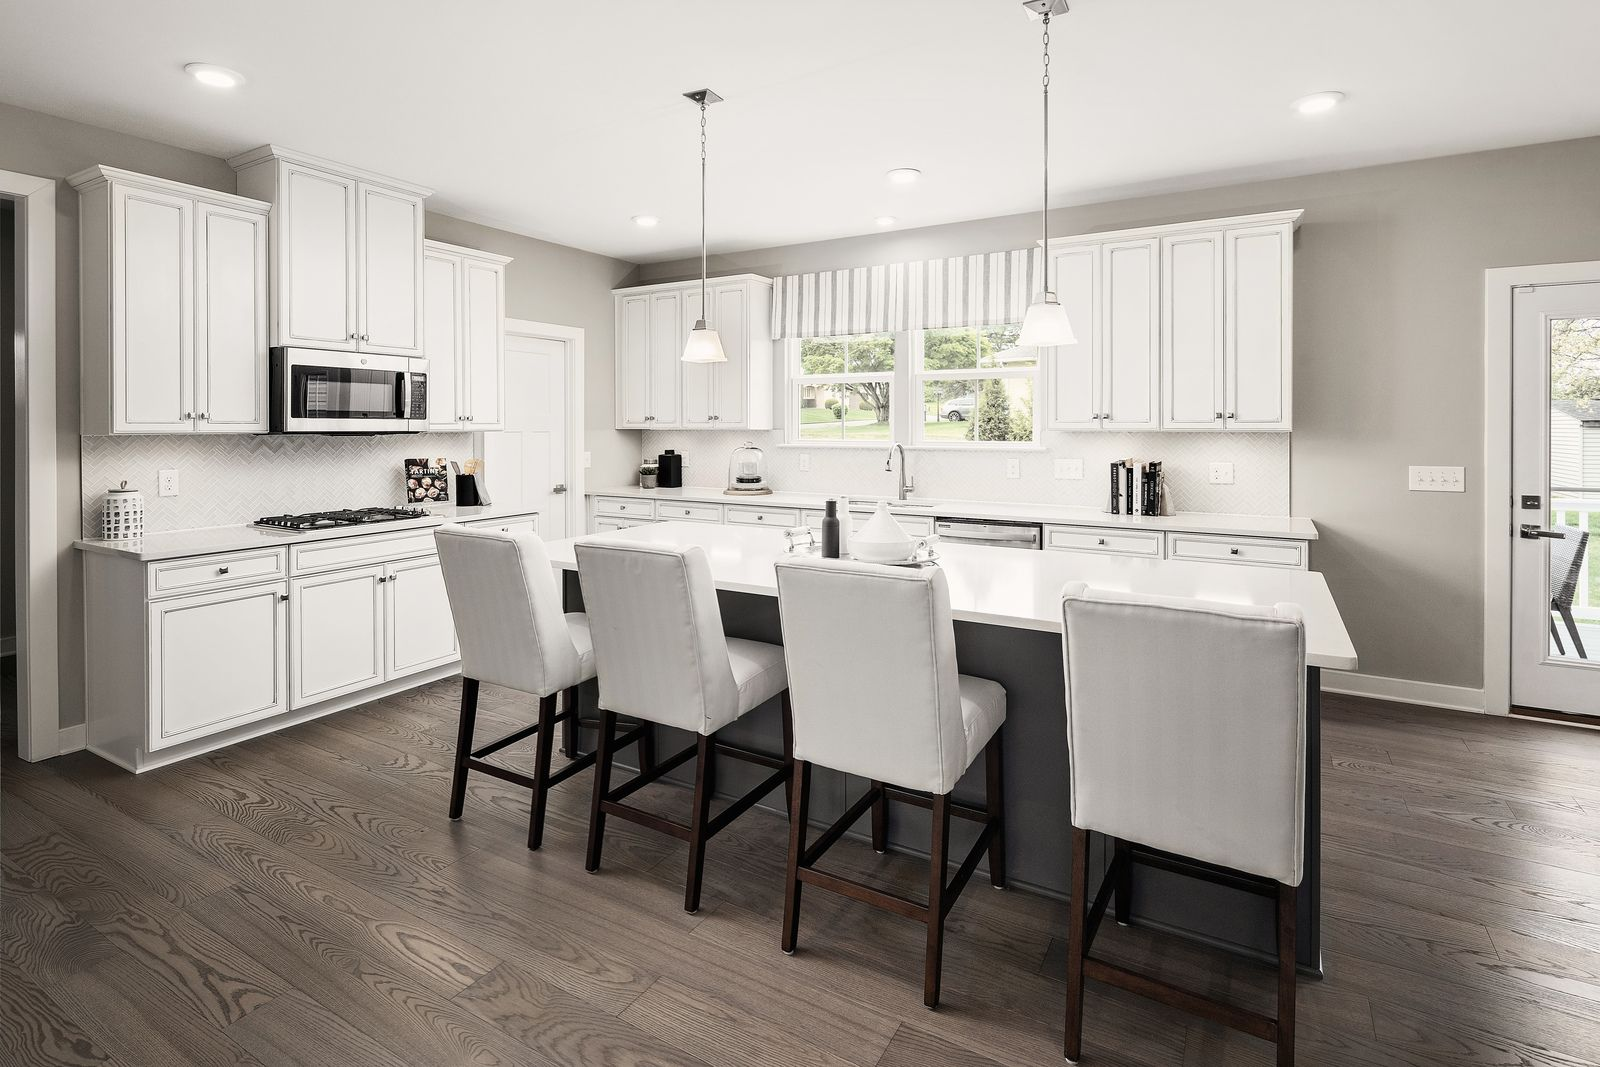 Kitchen featured in the Corsica By Ryan Homes in Pittsburgh, PA